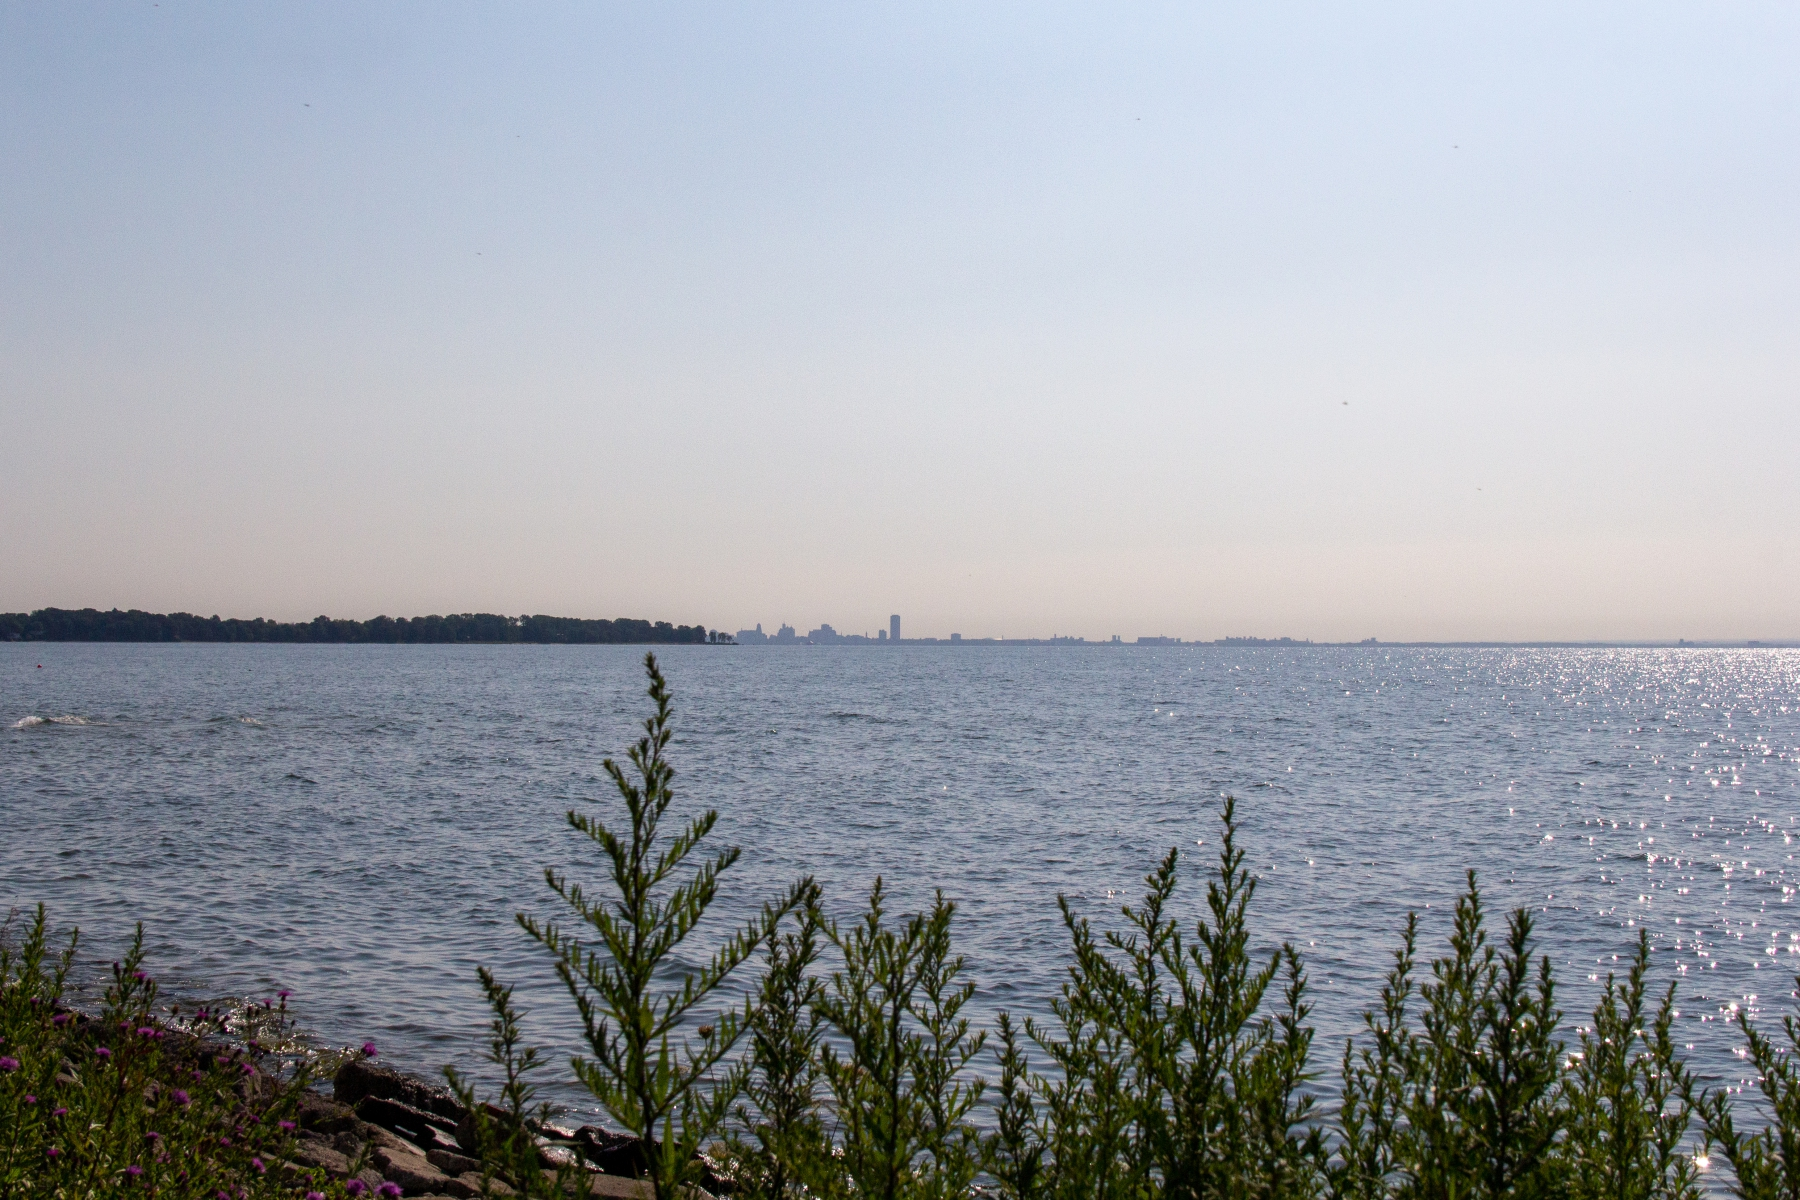 Buffalo in the distance